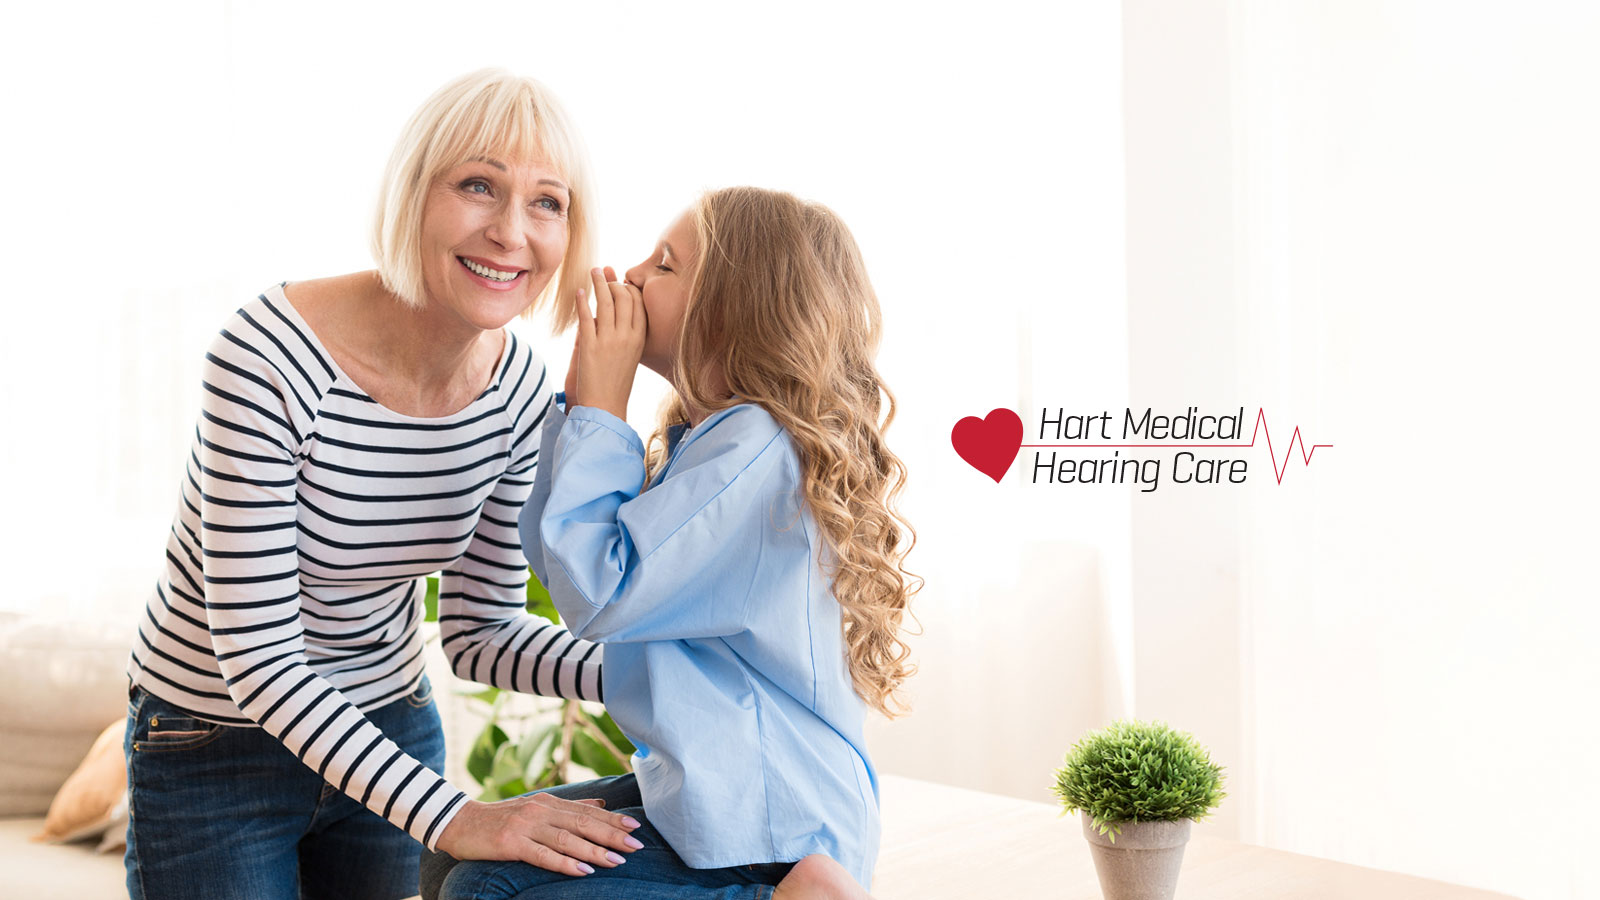 young girl speaking in older woman's ear with hart medical logo